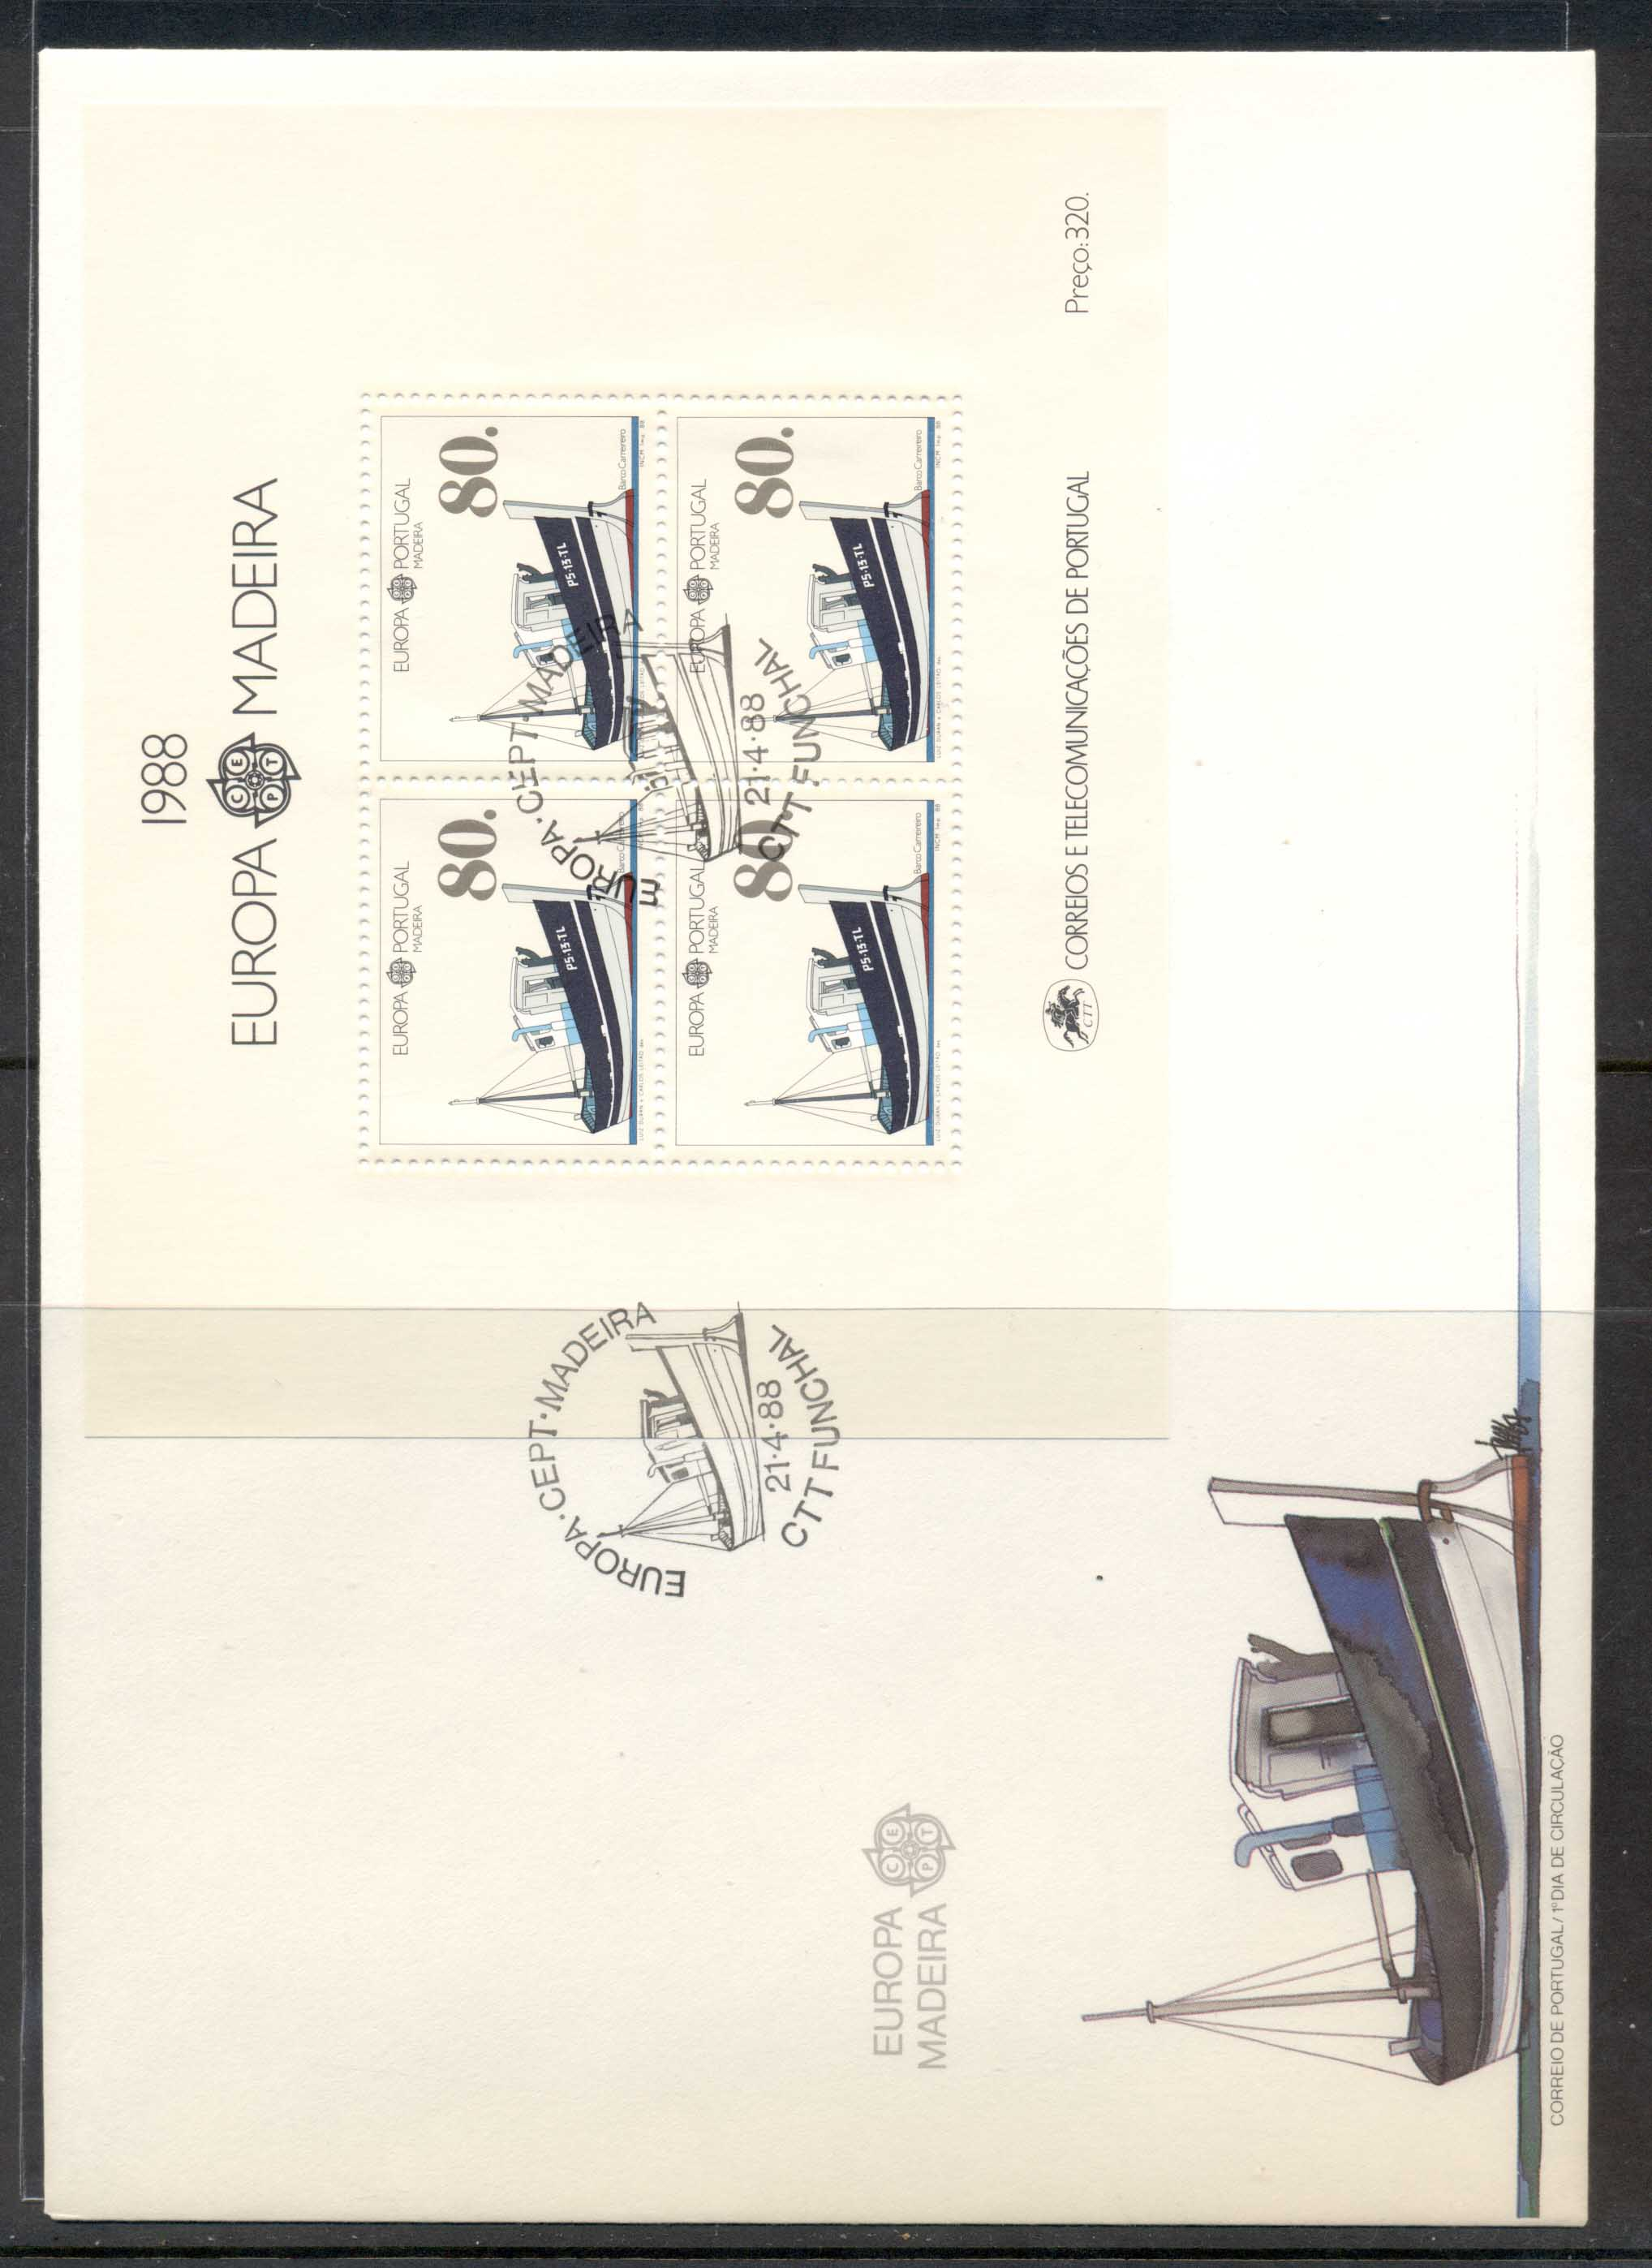 Madeira 1988 Europa Transport & Communication XLMS FDC